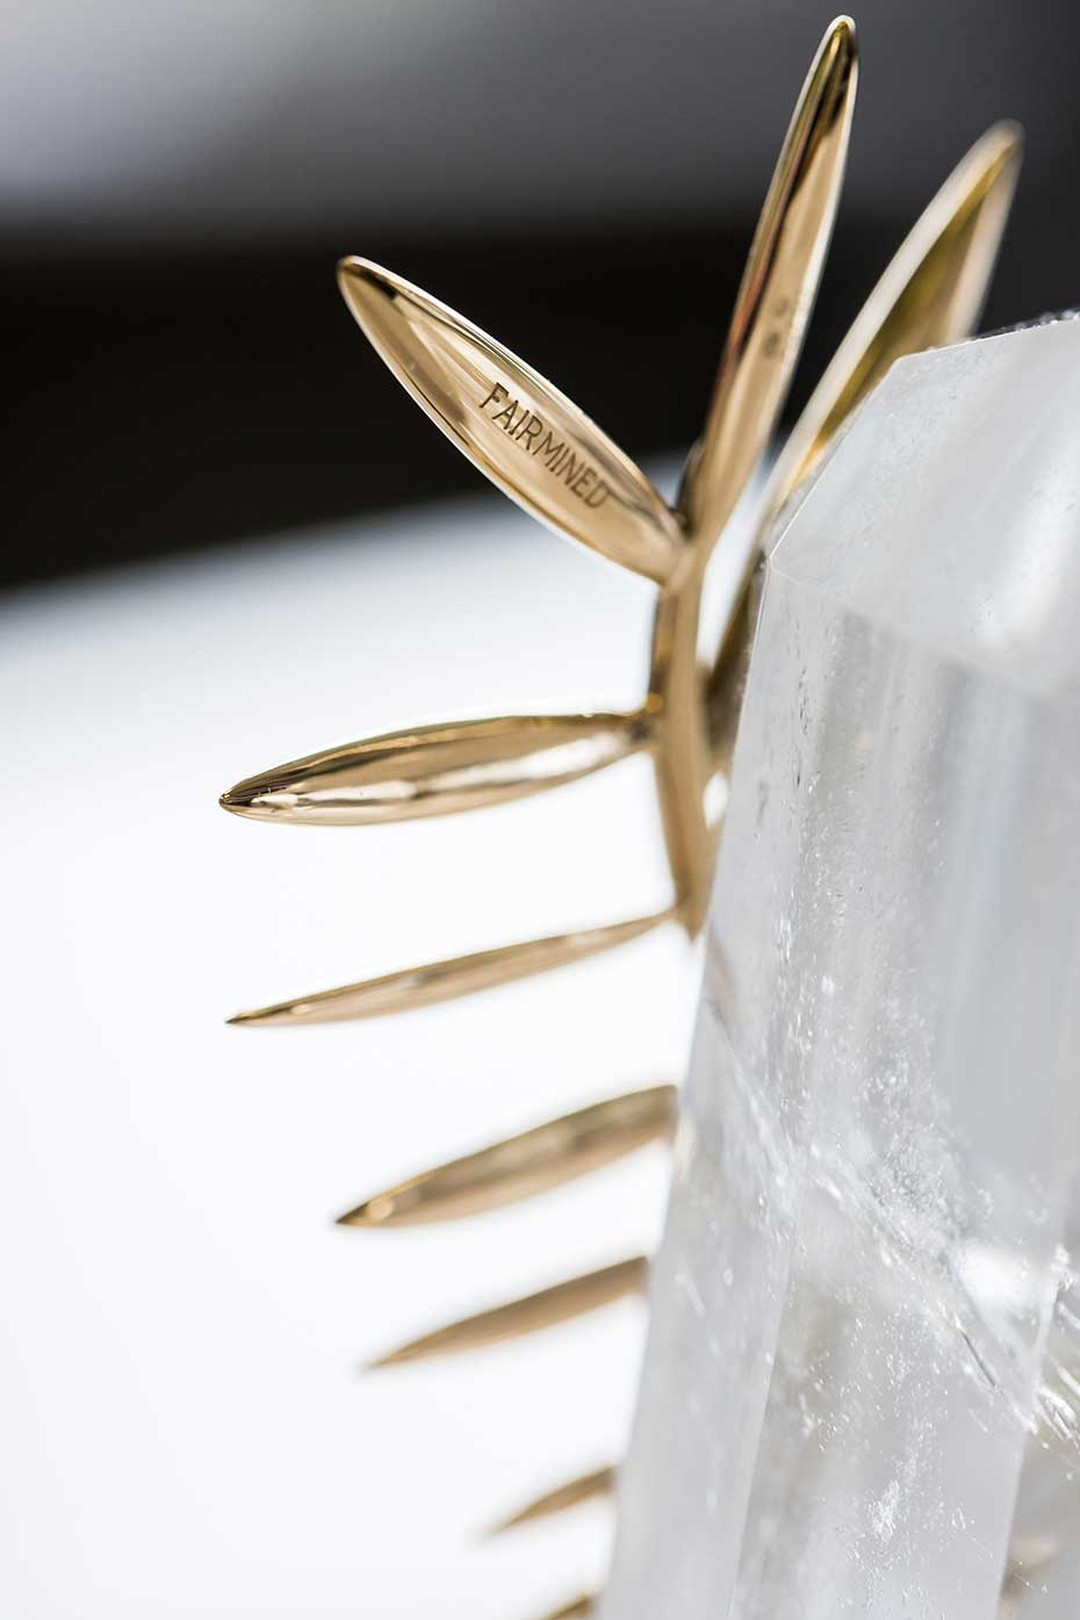 Chopard, which has been making the iconic trophy since 1998, announced in April that it had taken the decision to 'go green' at the Cannes Film Festival 2014 with the first Palme d'Or trophy in Fairmined gold